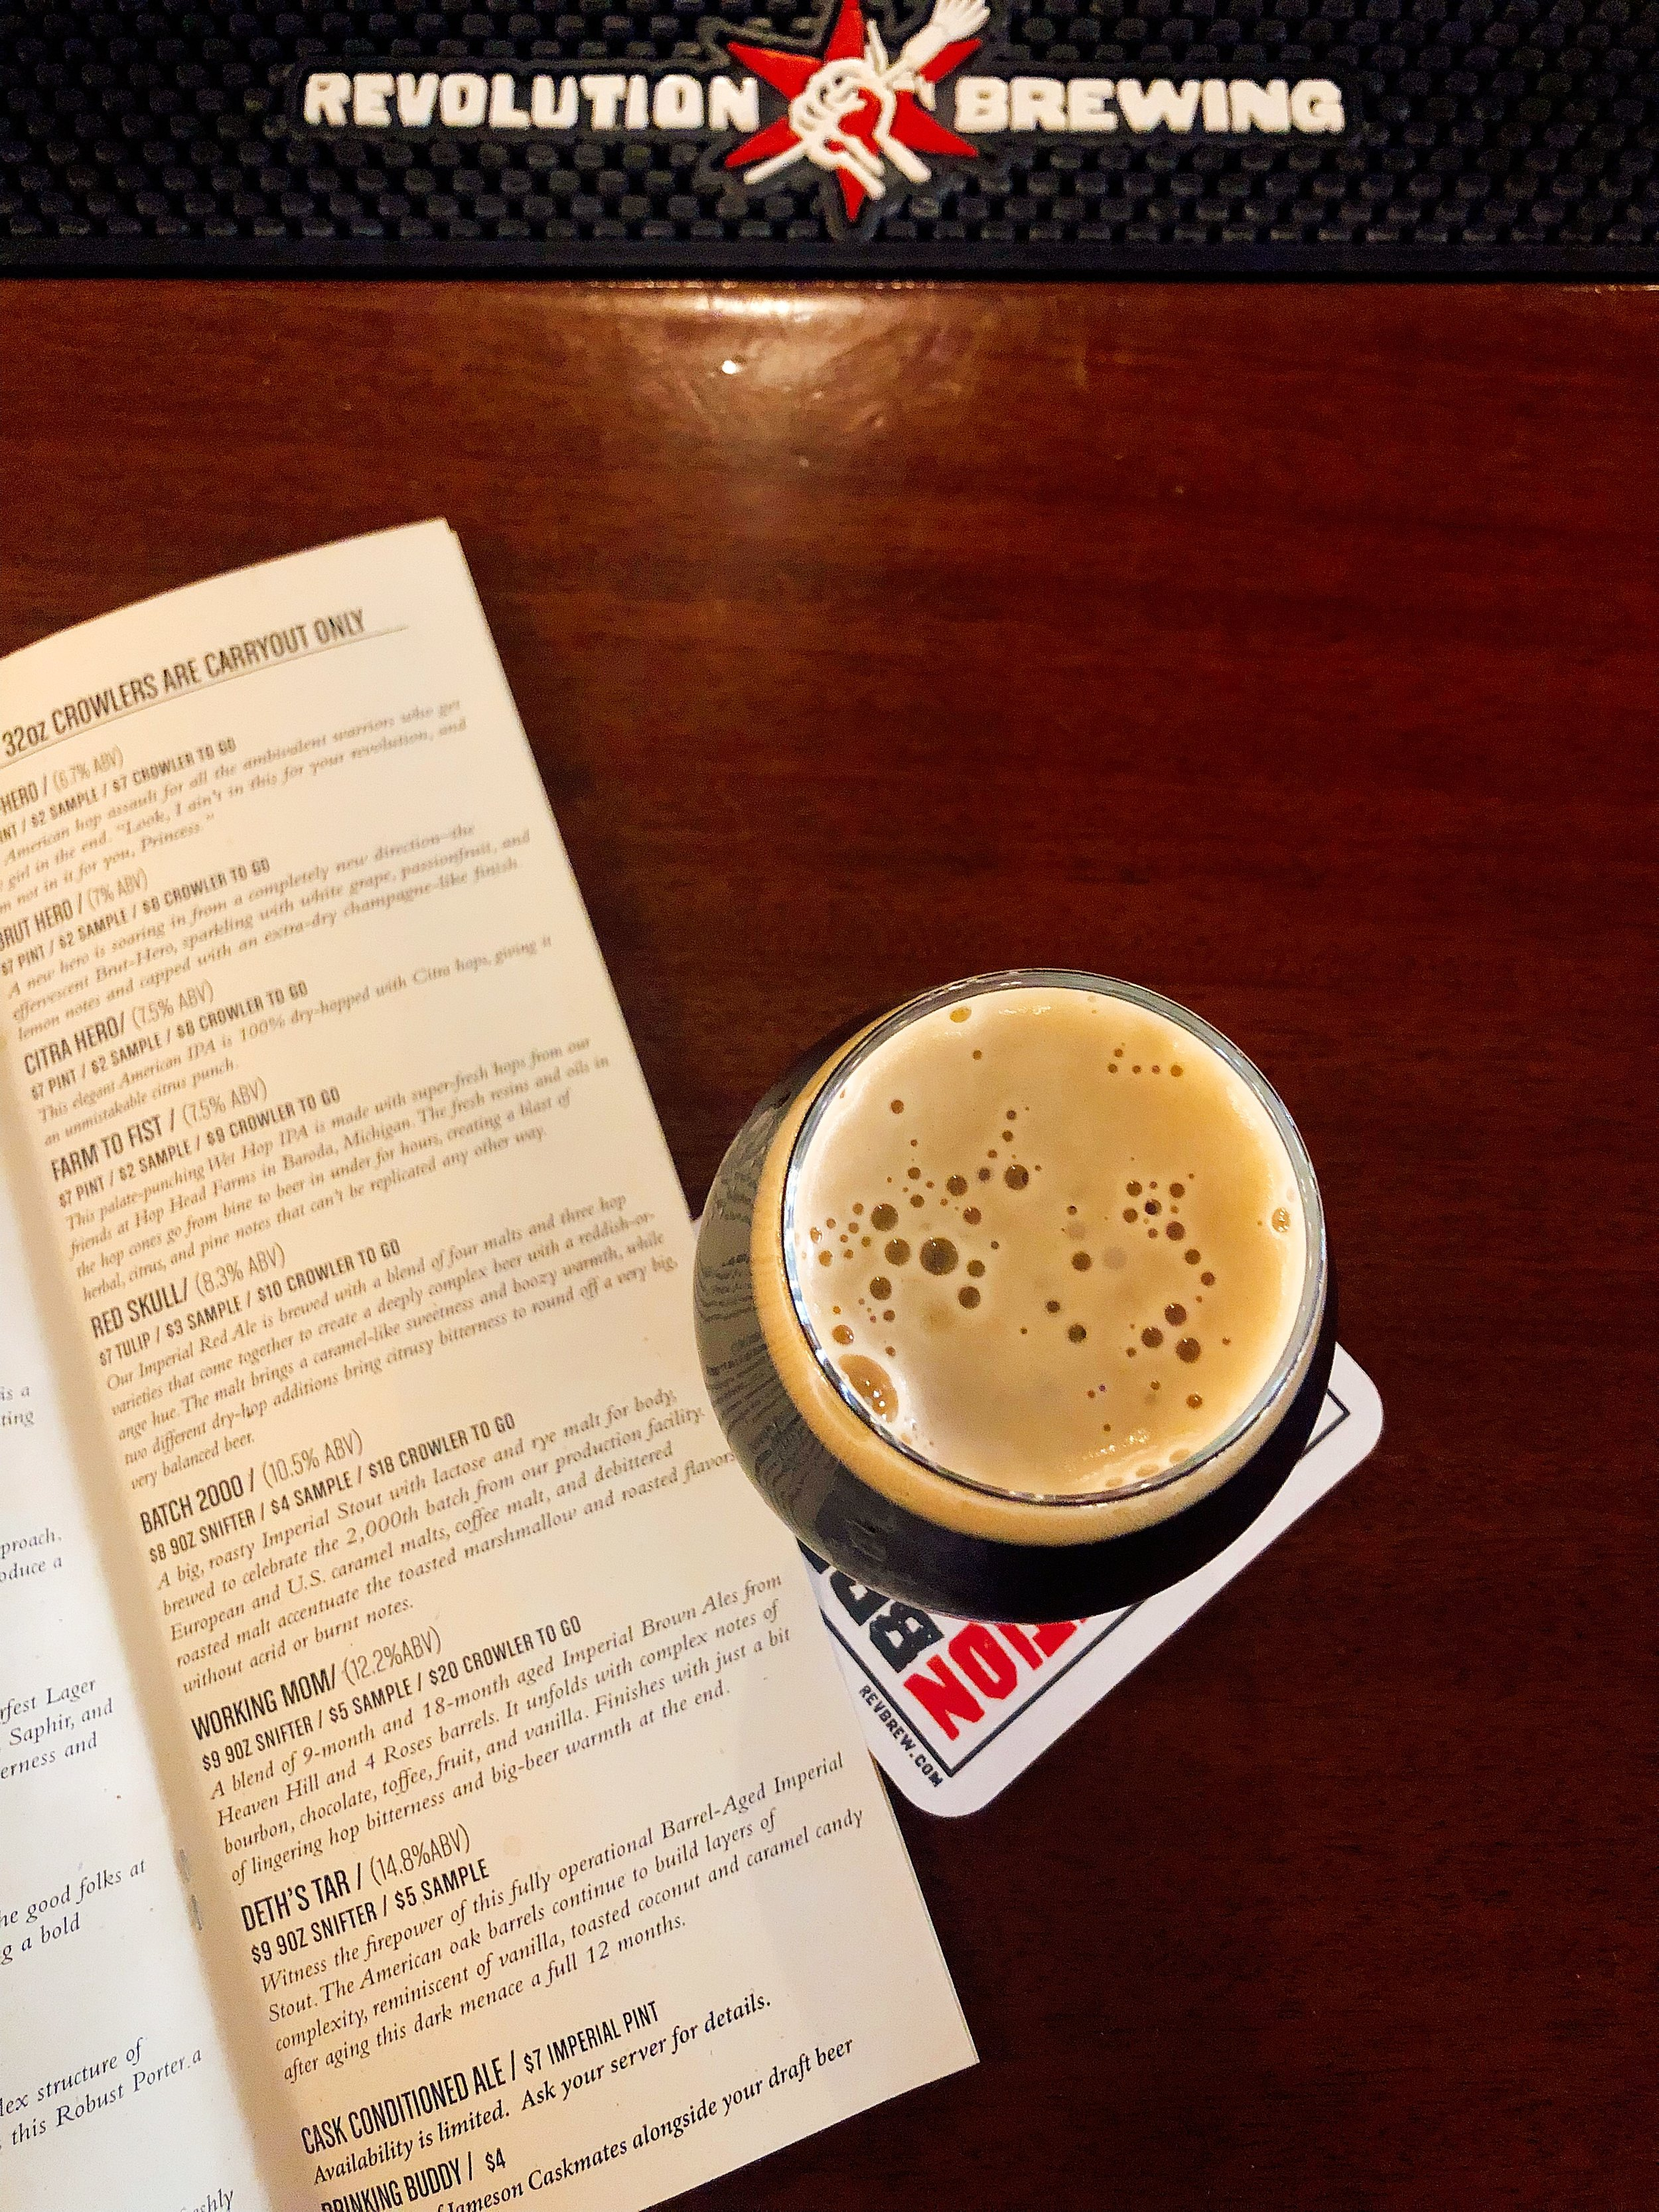 Having A Glass Of The Working Mom At Revolution Brewing